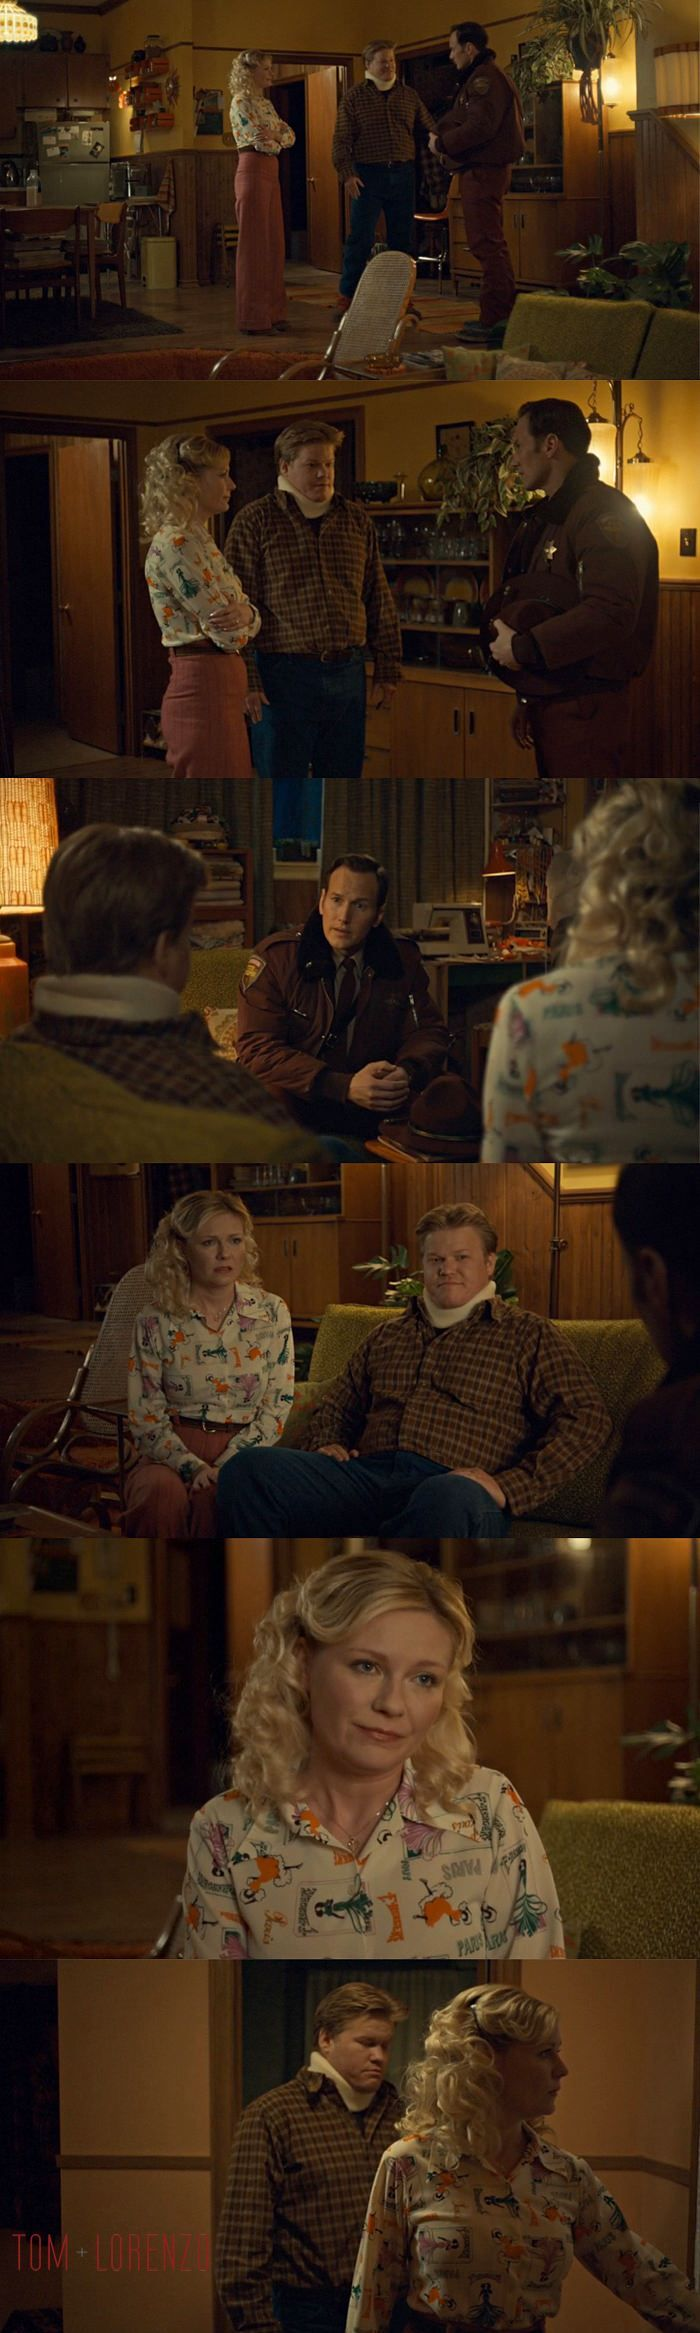 "Fargo 'Fear and Trembling' Season 2 , Episode 4 | All of Peggy's small town middle class aspirations are represented in that blouse, with ""PARIS"" written all over it, representing a dreamy anywhere-but-here sentiment that underlies all her actions, and Can Can dancers representing a more glamorous version of womanhood; just like the drawings of flawless women that adorn the walls of the salon and taunt her with their perfection. It's the Blouse of Insecurities."